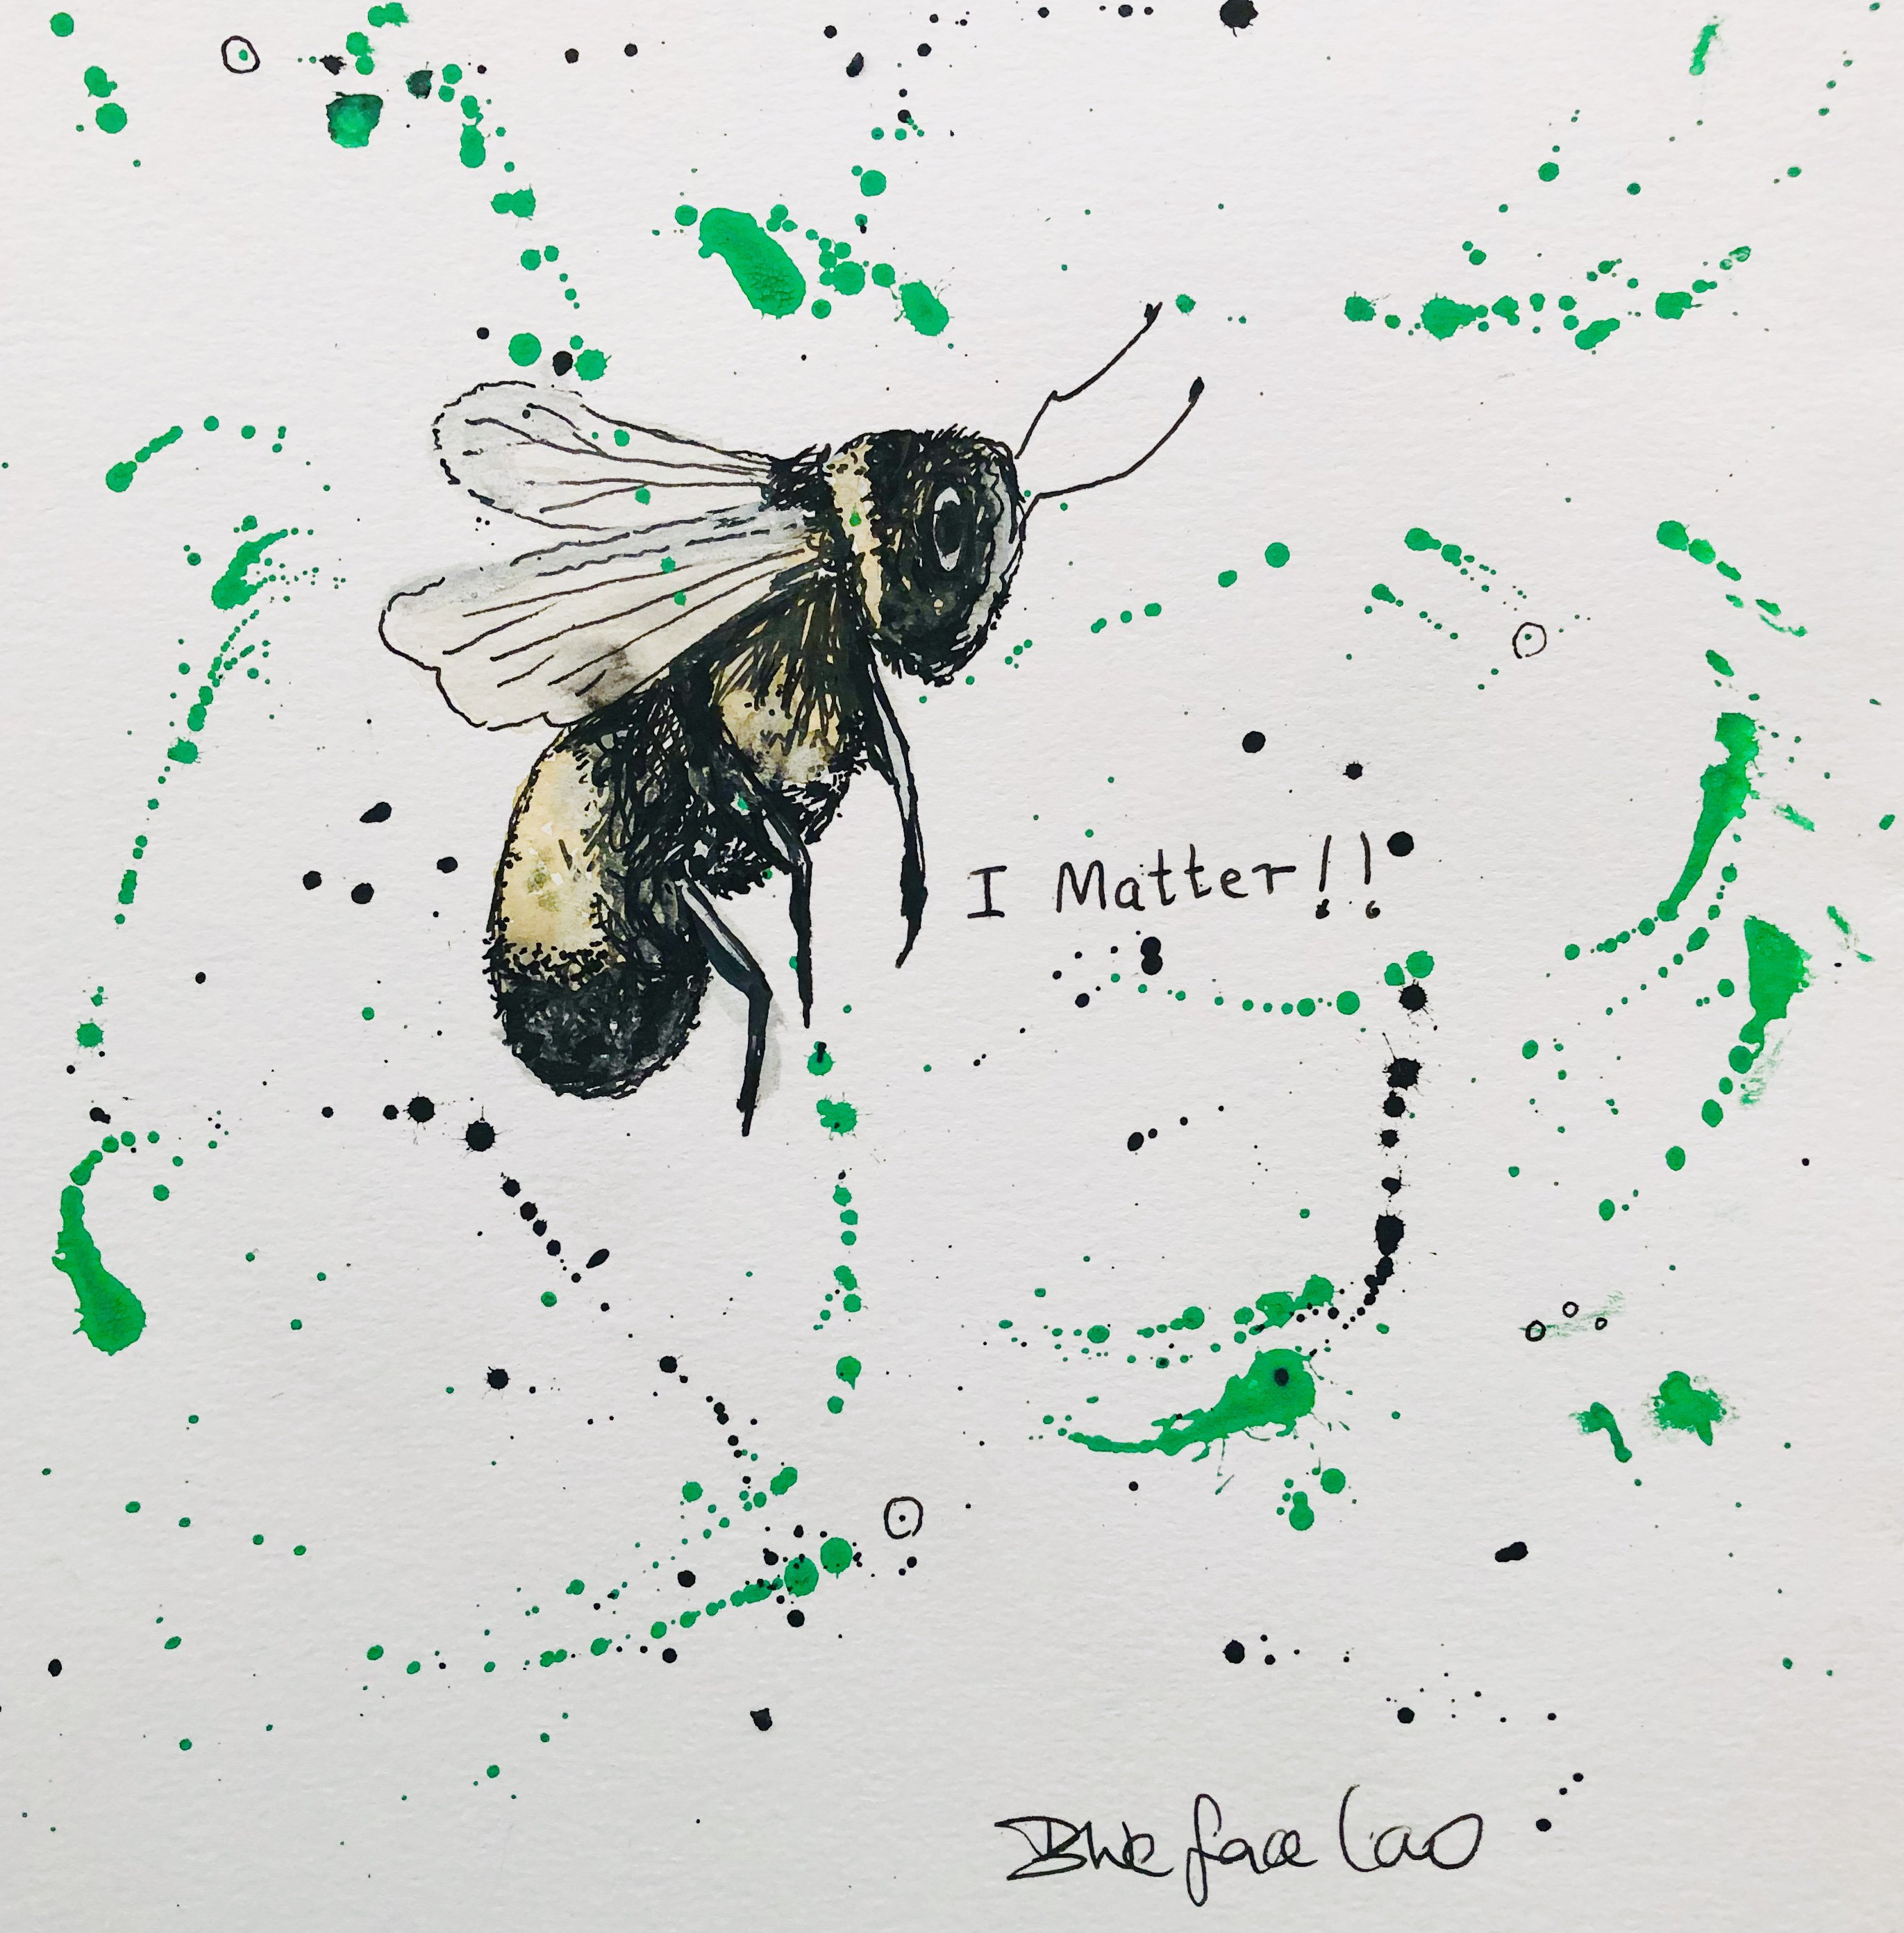 I matter by Artist Blue Face Cow (1).jpg